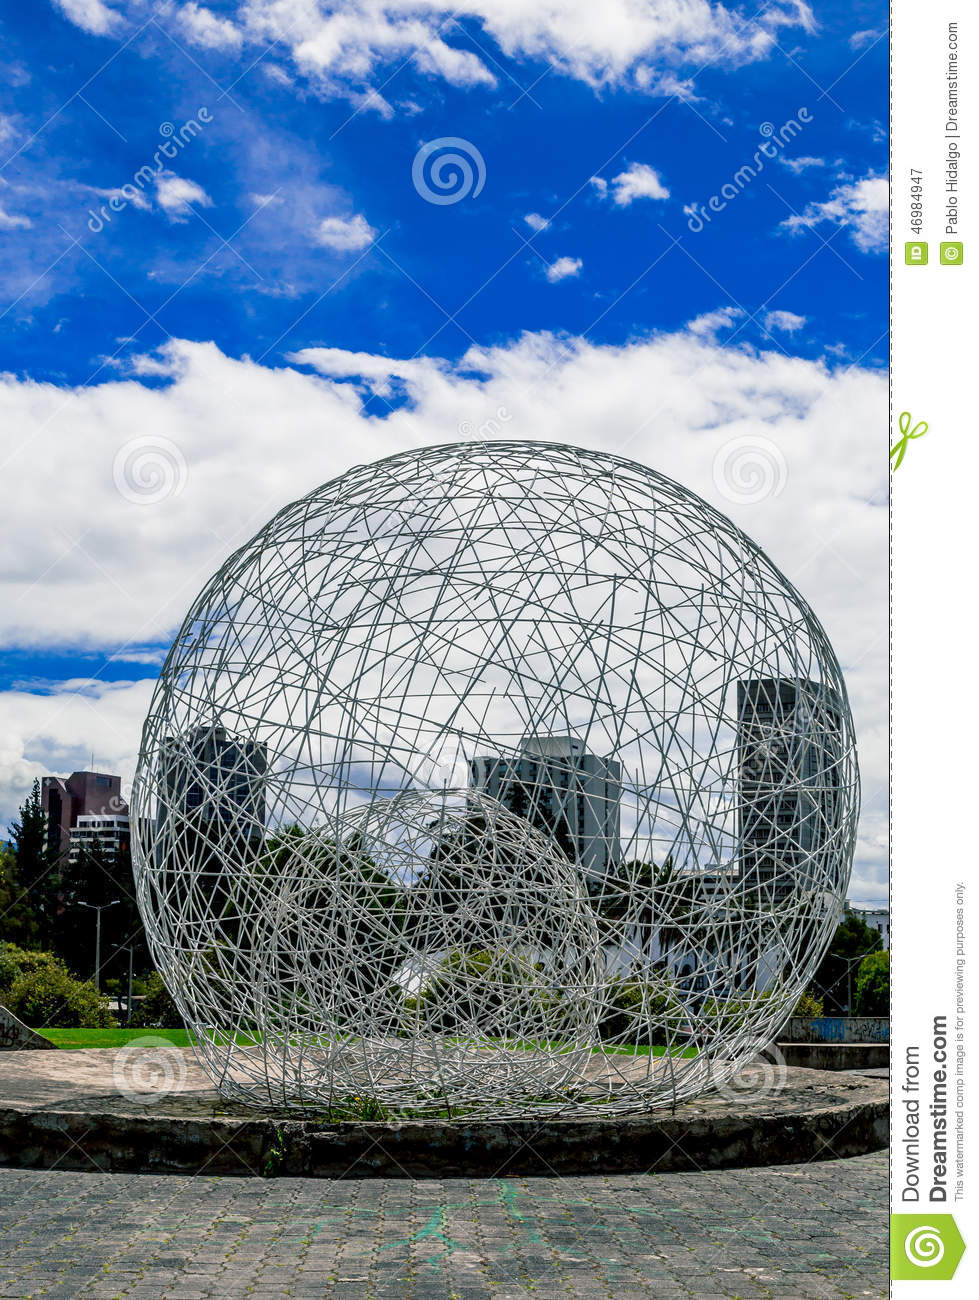 Sculptural Spheres Crazy Wonderful: Metal Sphere Sculpture In Park Quito Ecuador South Stock